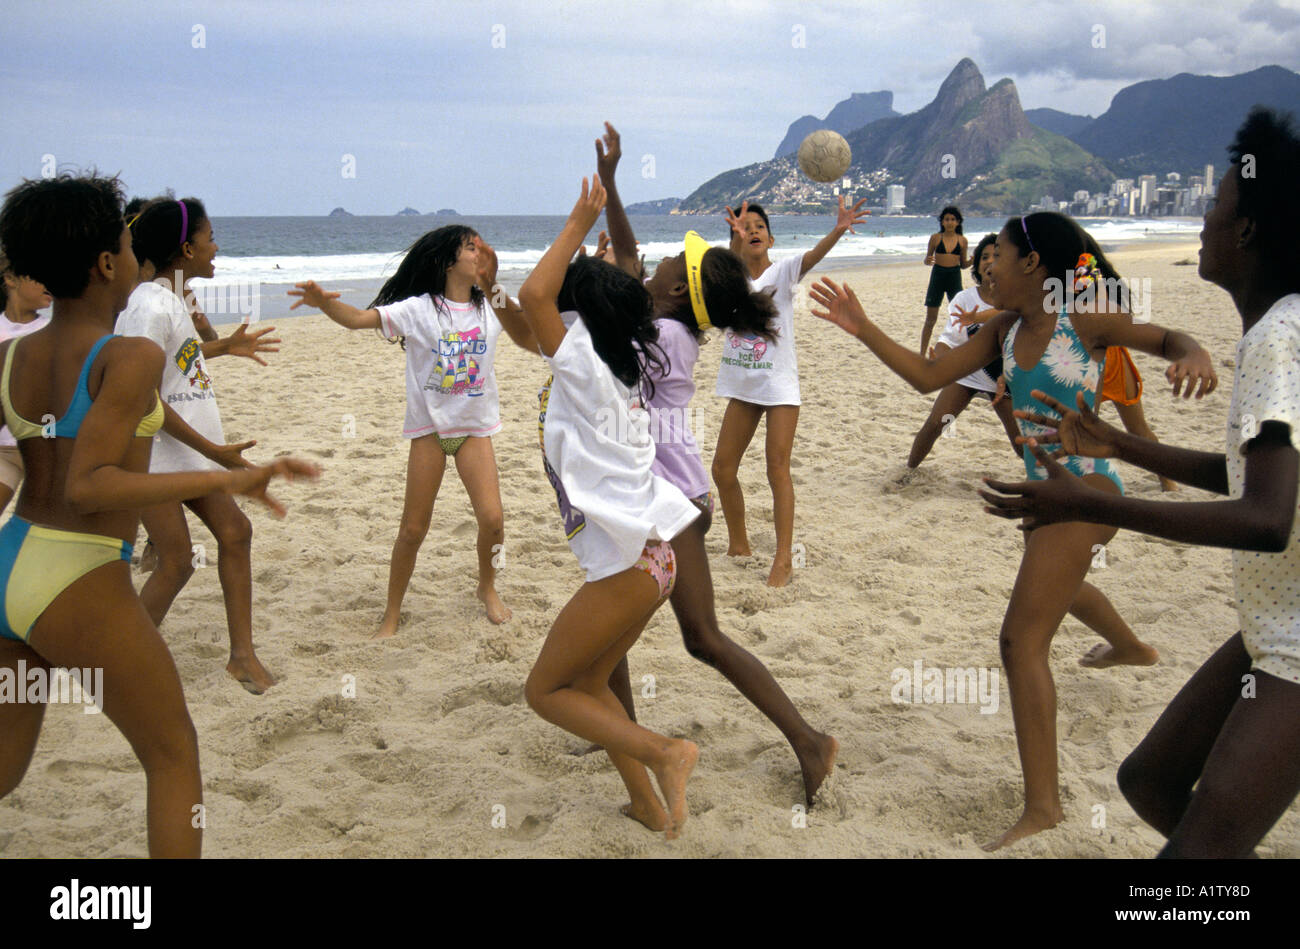 Consider, girls from ipanema beach